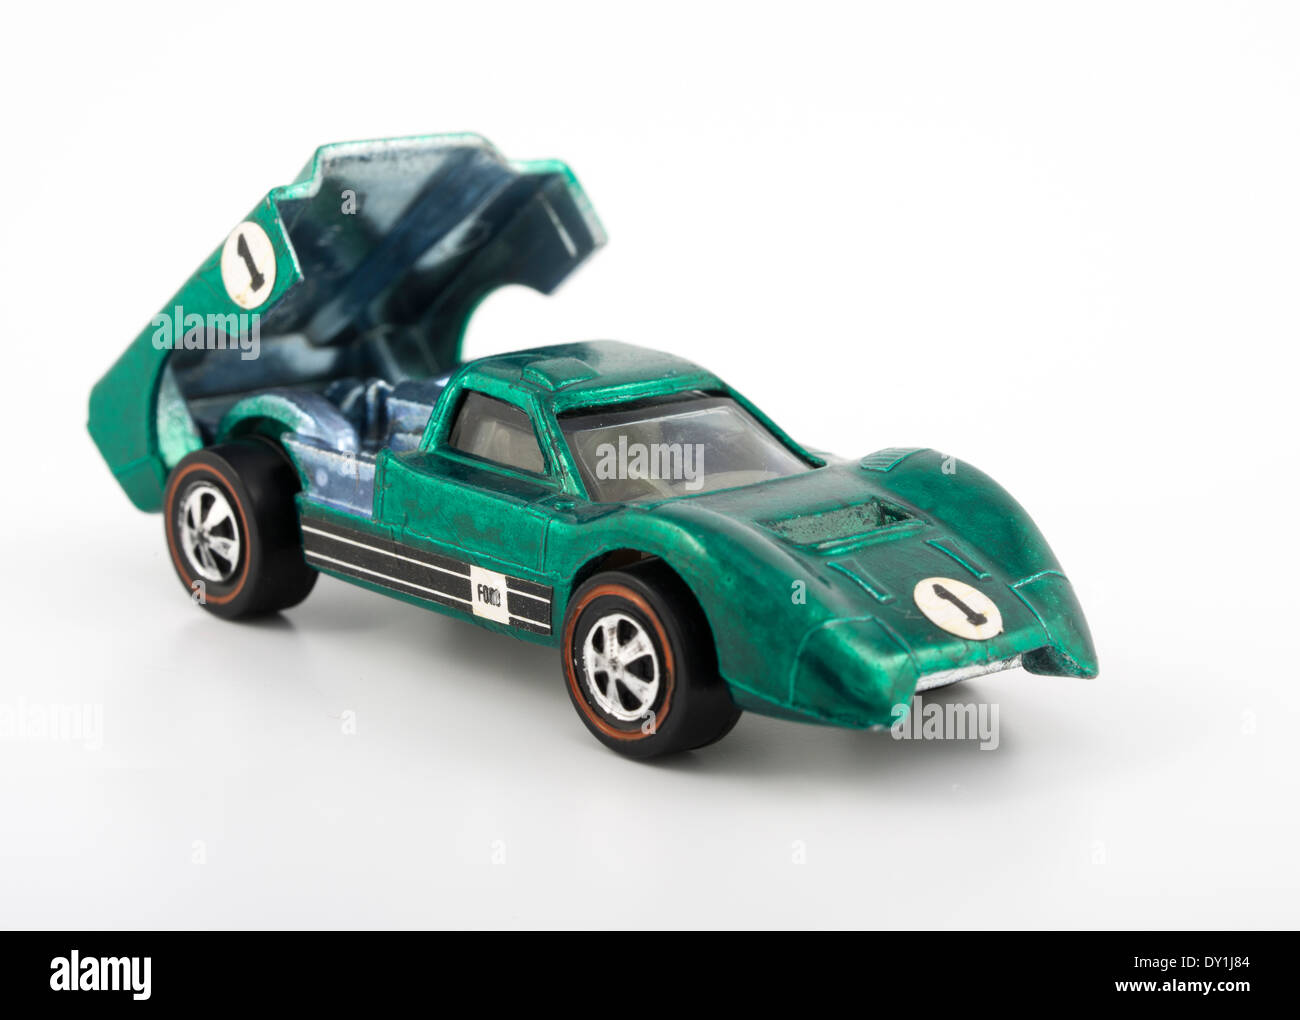 Hot Wheels Toy Cars : Green ford j car hot wheels die cast toy cars by mattel